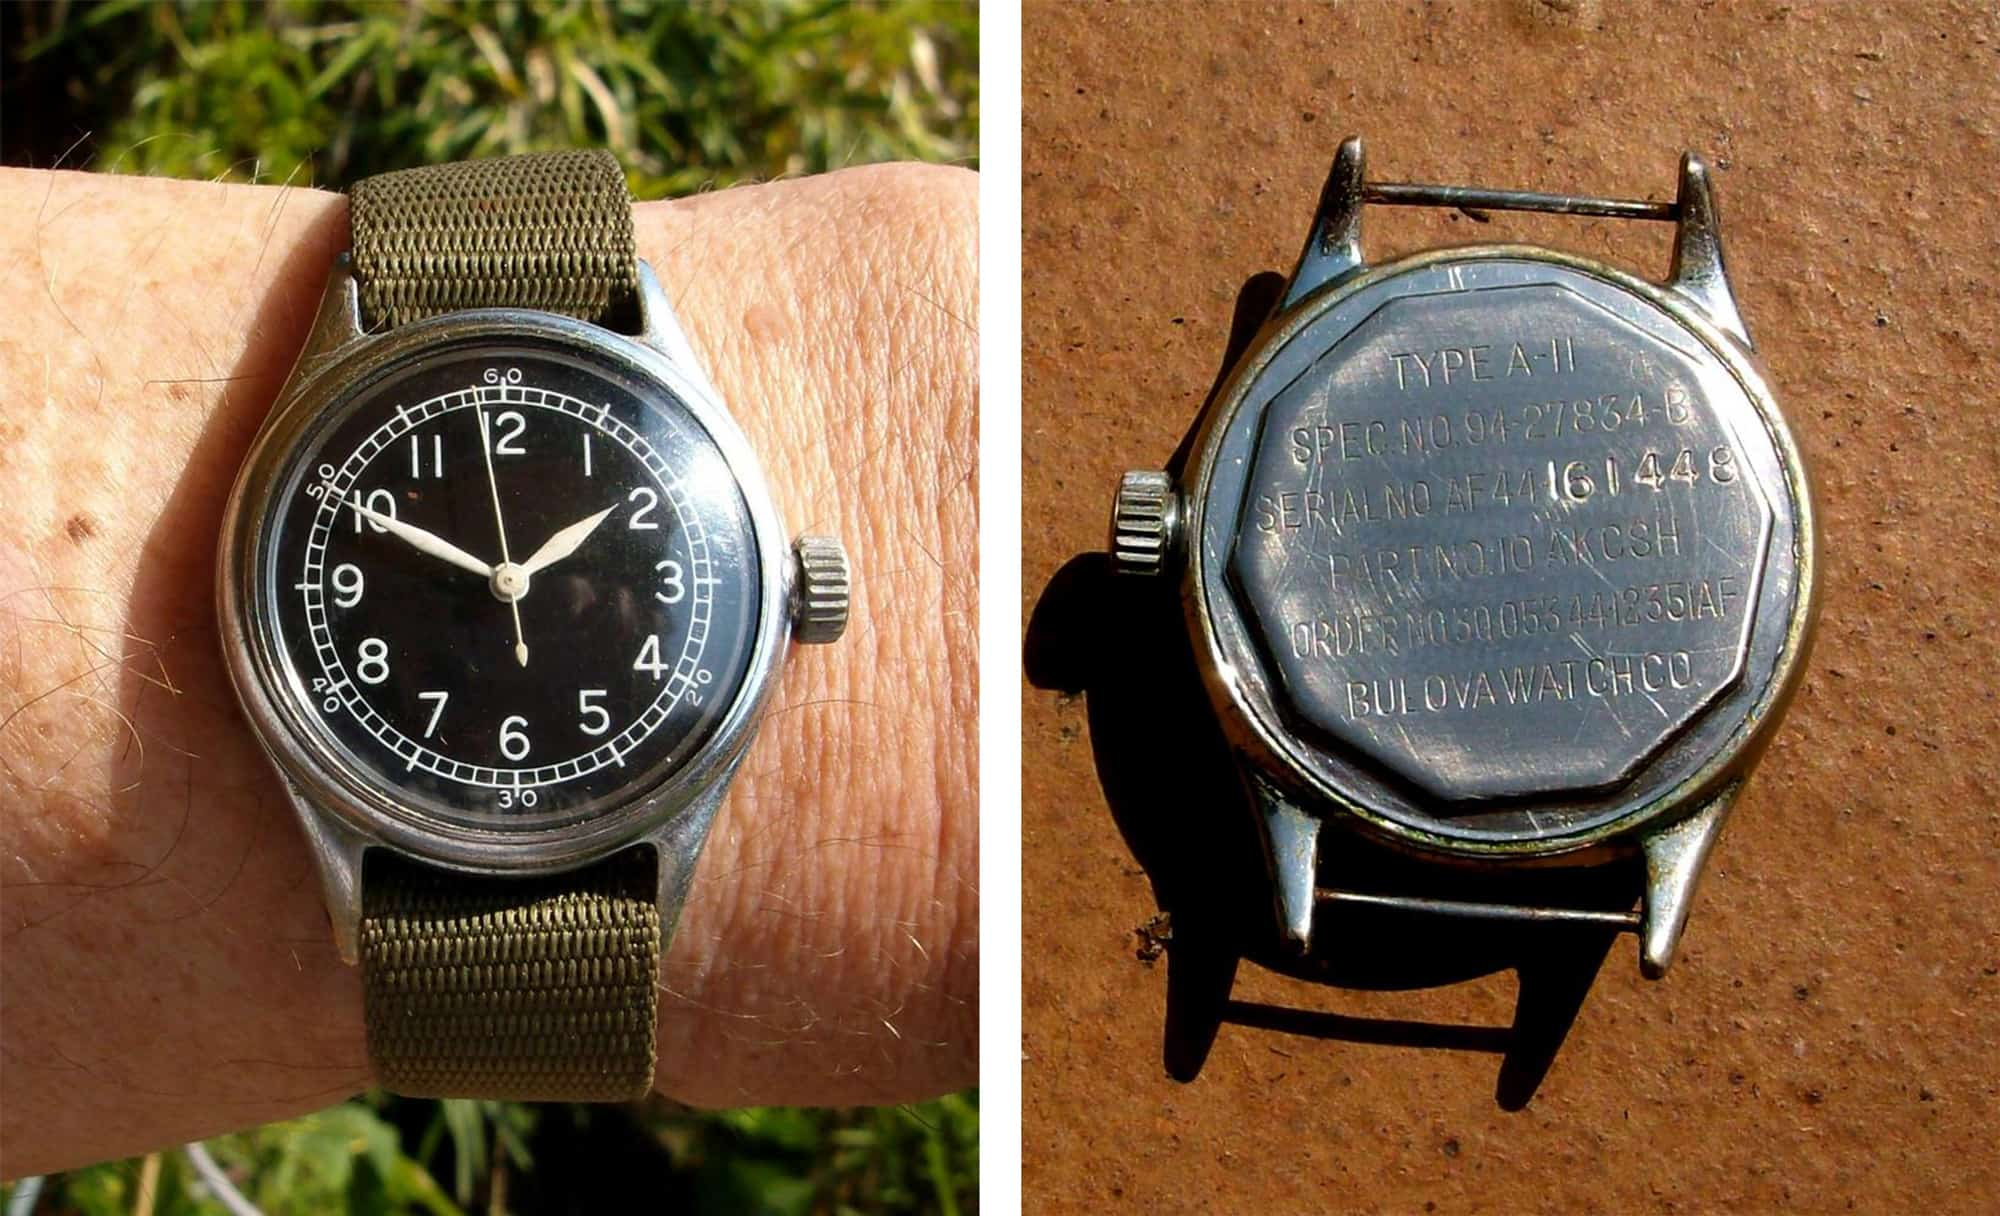 Military Watches of the World: A-11, the Watch That Won the War